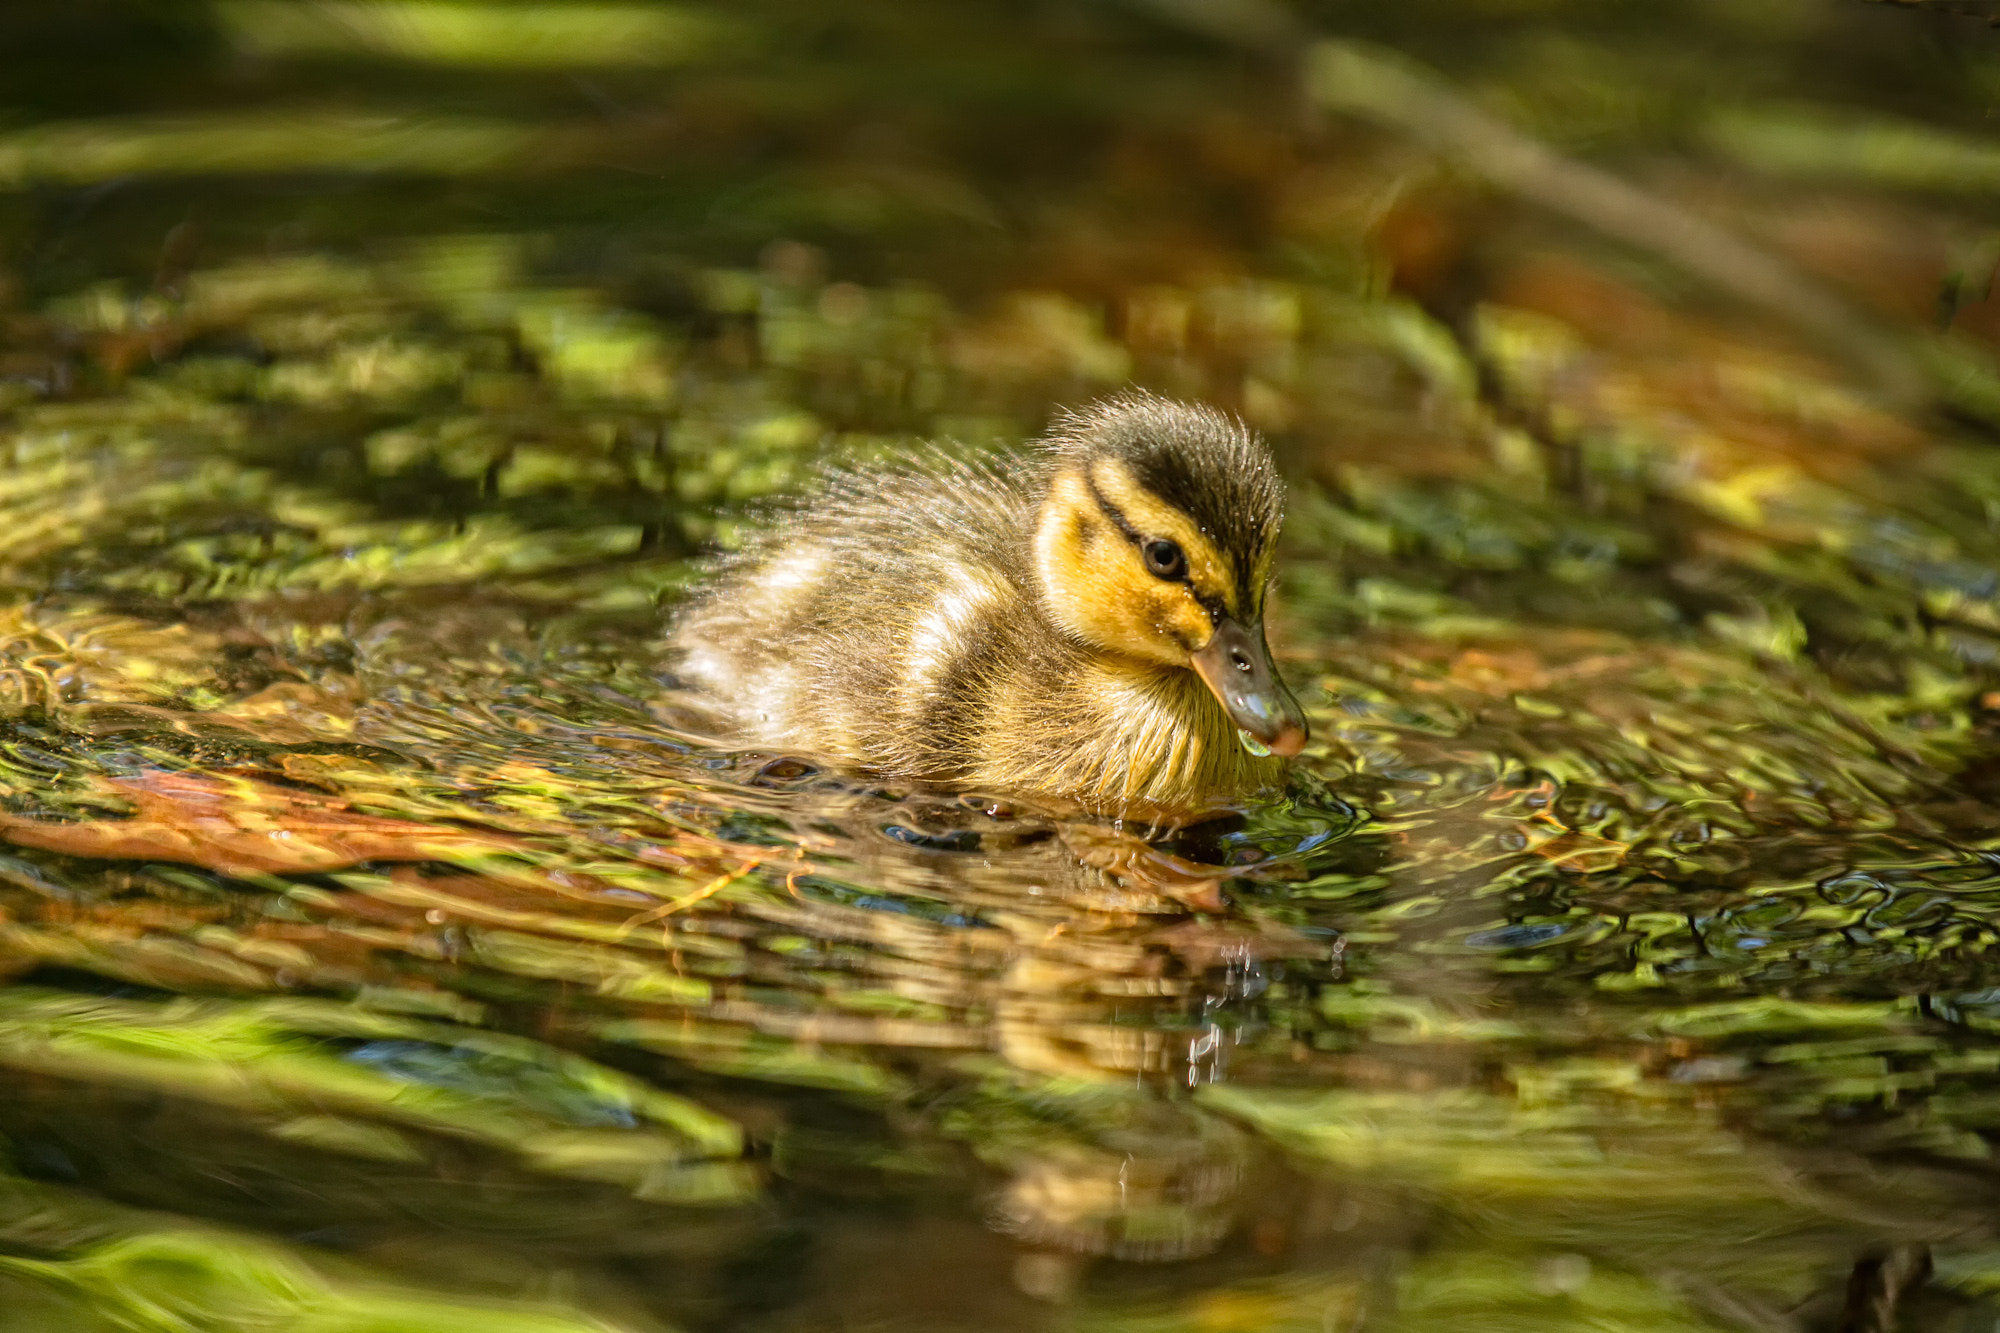 Photograph Duckling by Joseph Calev on 500px